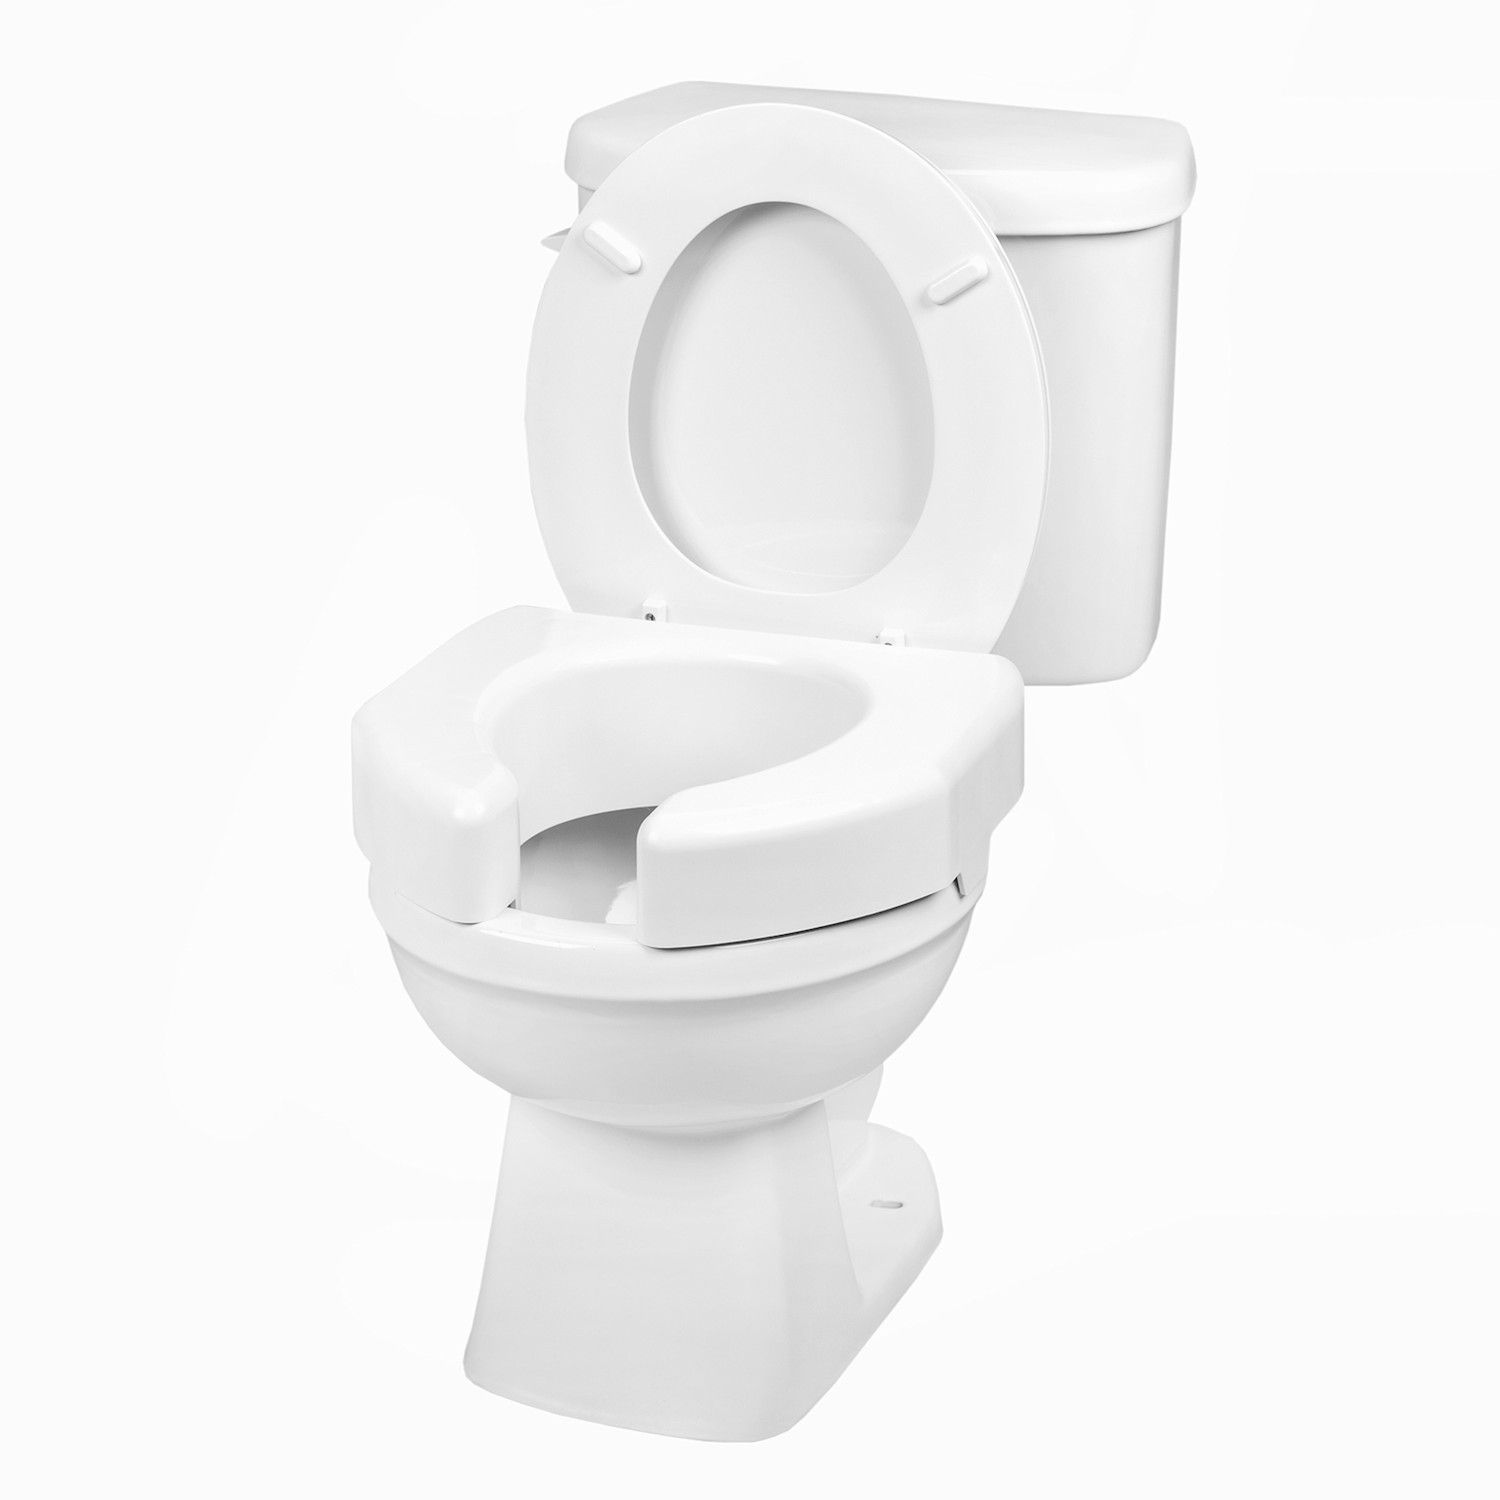 Raised Toilet Seat With Open Front Toilet New Toilet Kohler Toilet